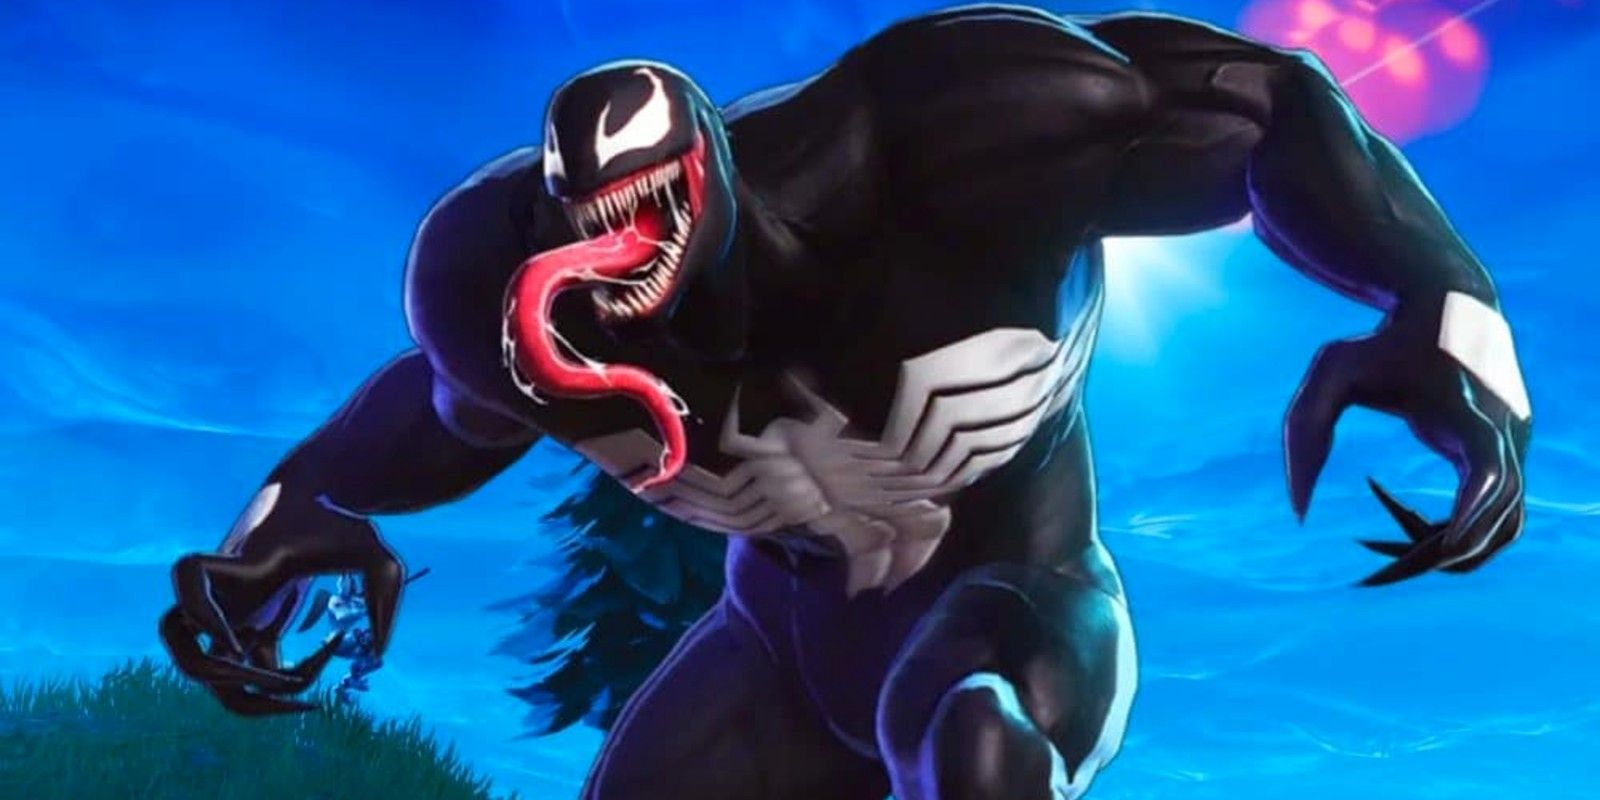 How To Get The Venom Skin Pickaxe In Fortnite Screen Rant We have high quality images available of this skin on our site. how to get the venom skin pickaxe in